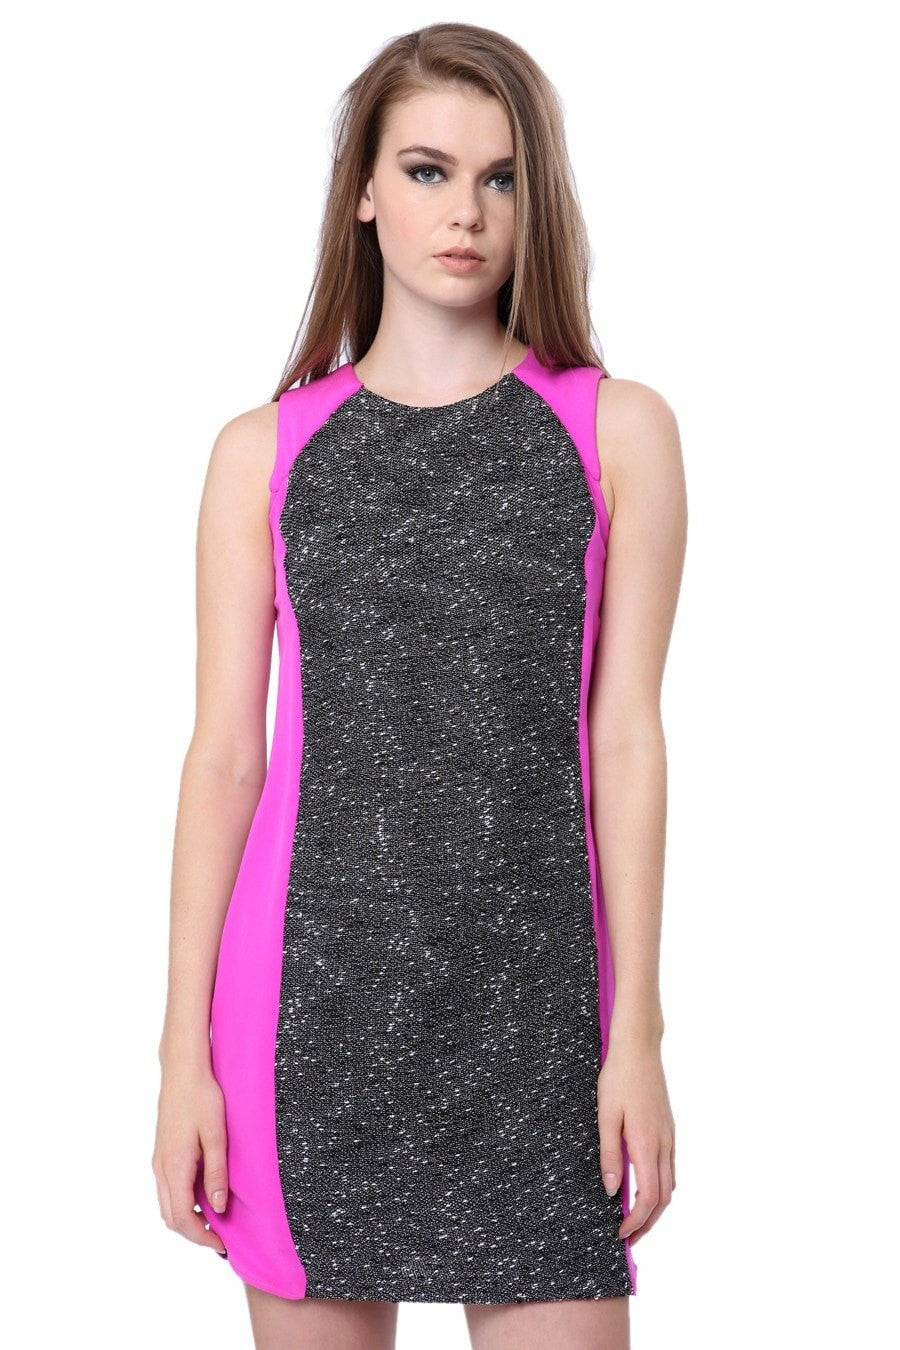 By Johnny Pink & Grey Panel Alix Shift Dress